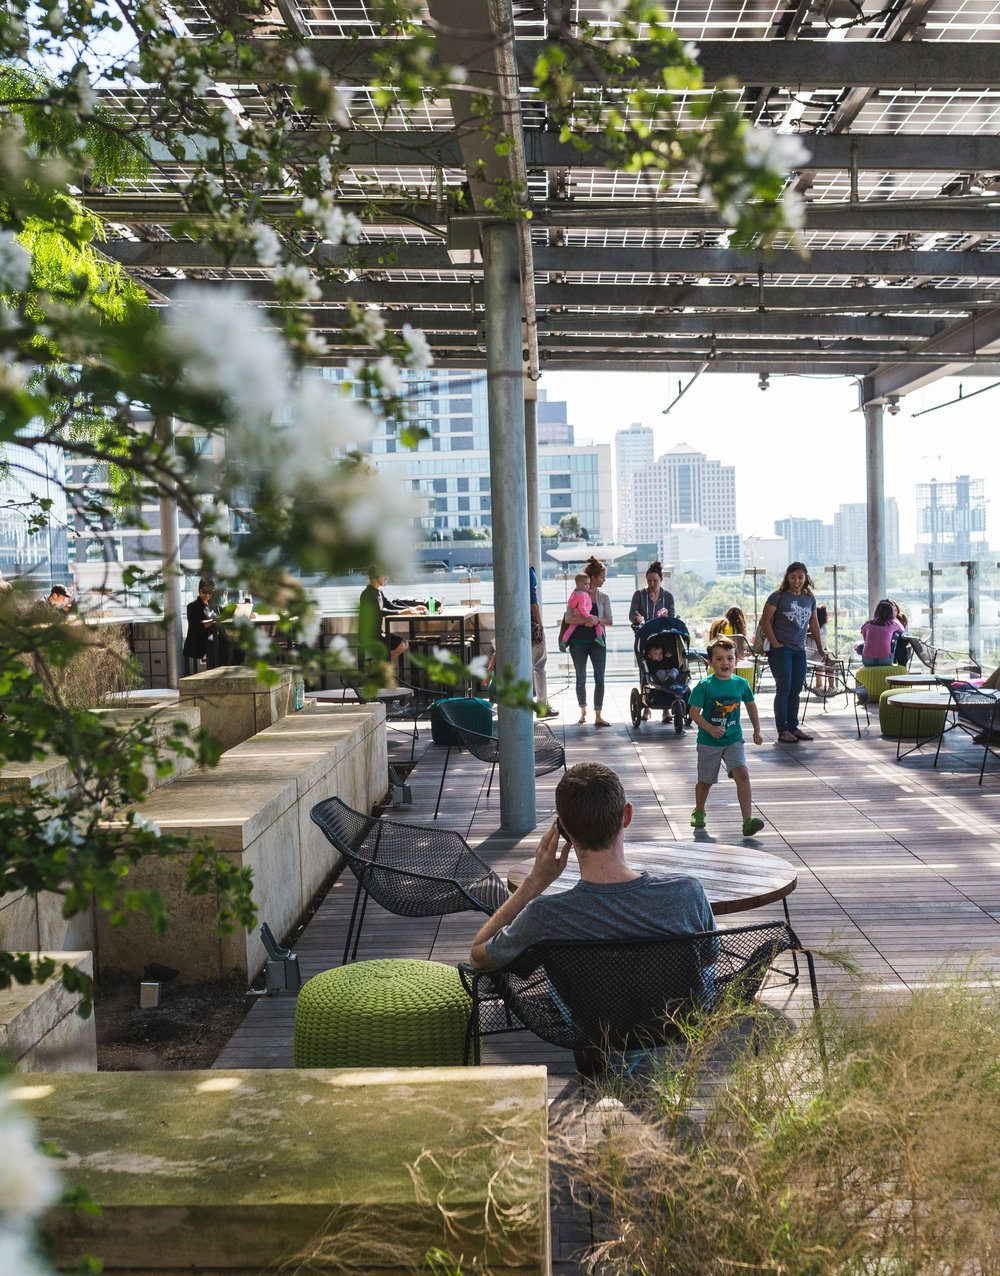 The rooftop patio has fantastic views of the surrounding skyline, and a nature oriented-feel.